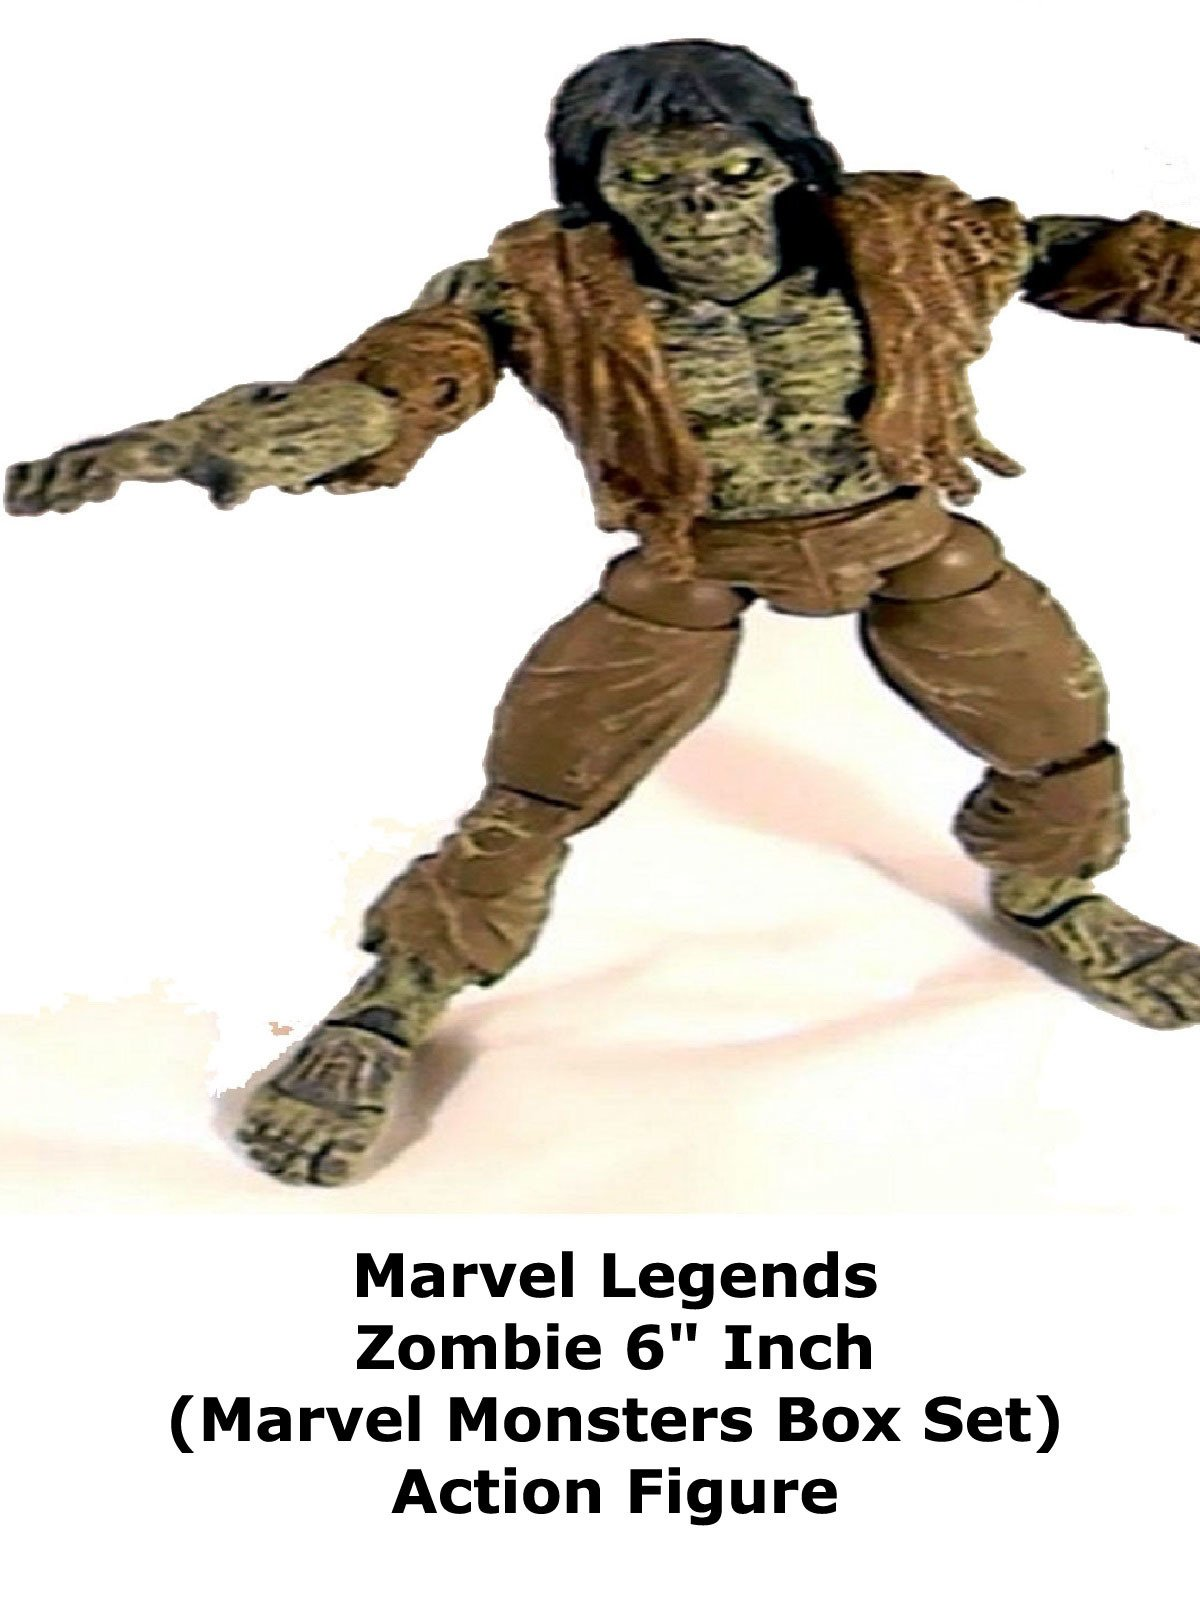 "Review: Marvel Legends Zombie 6"" Inch (Marvel Monsters Box Set) Action Figure"